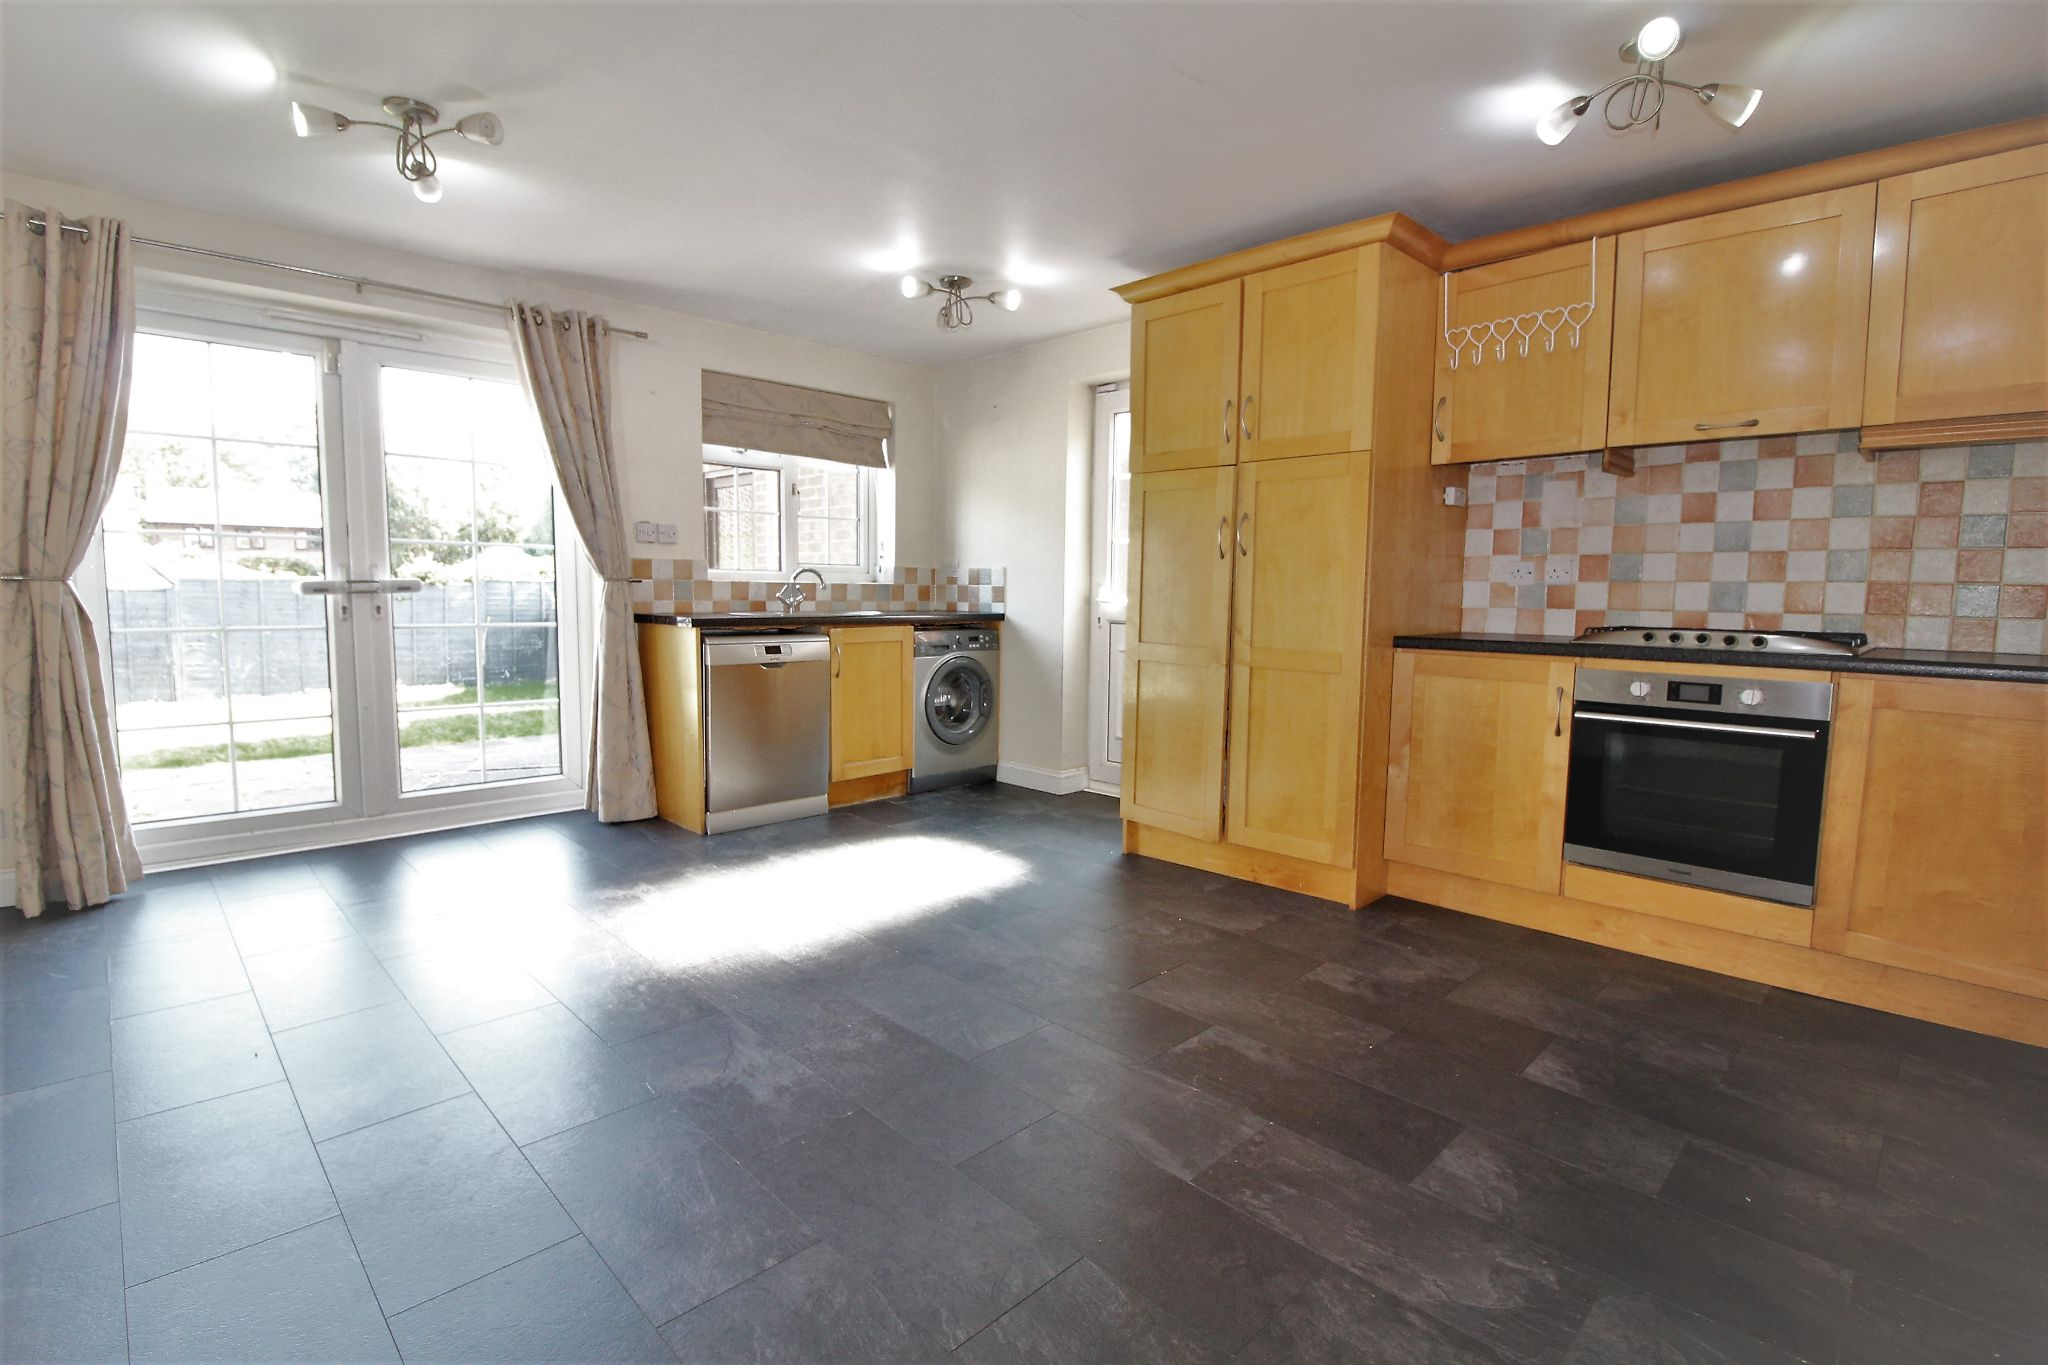 3 bedroom semi-detached house Let Agreed in Solihull - Photograph 3.